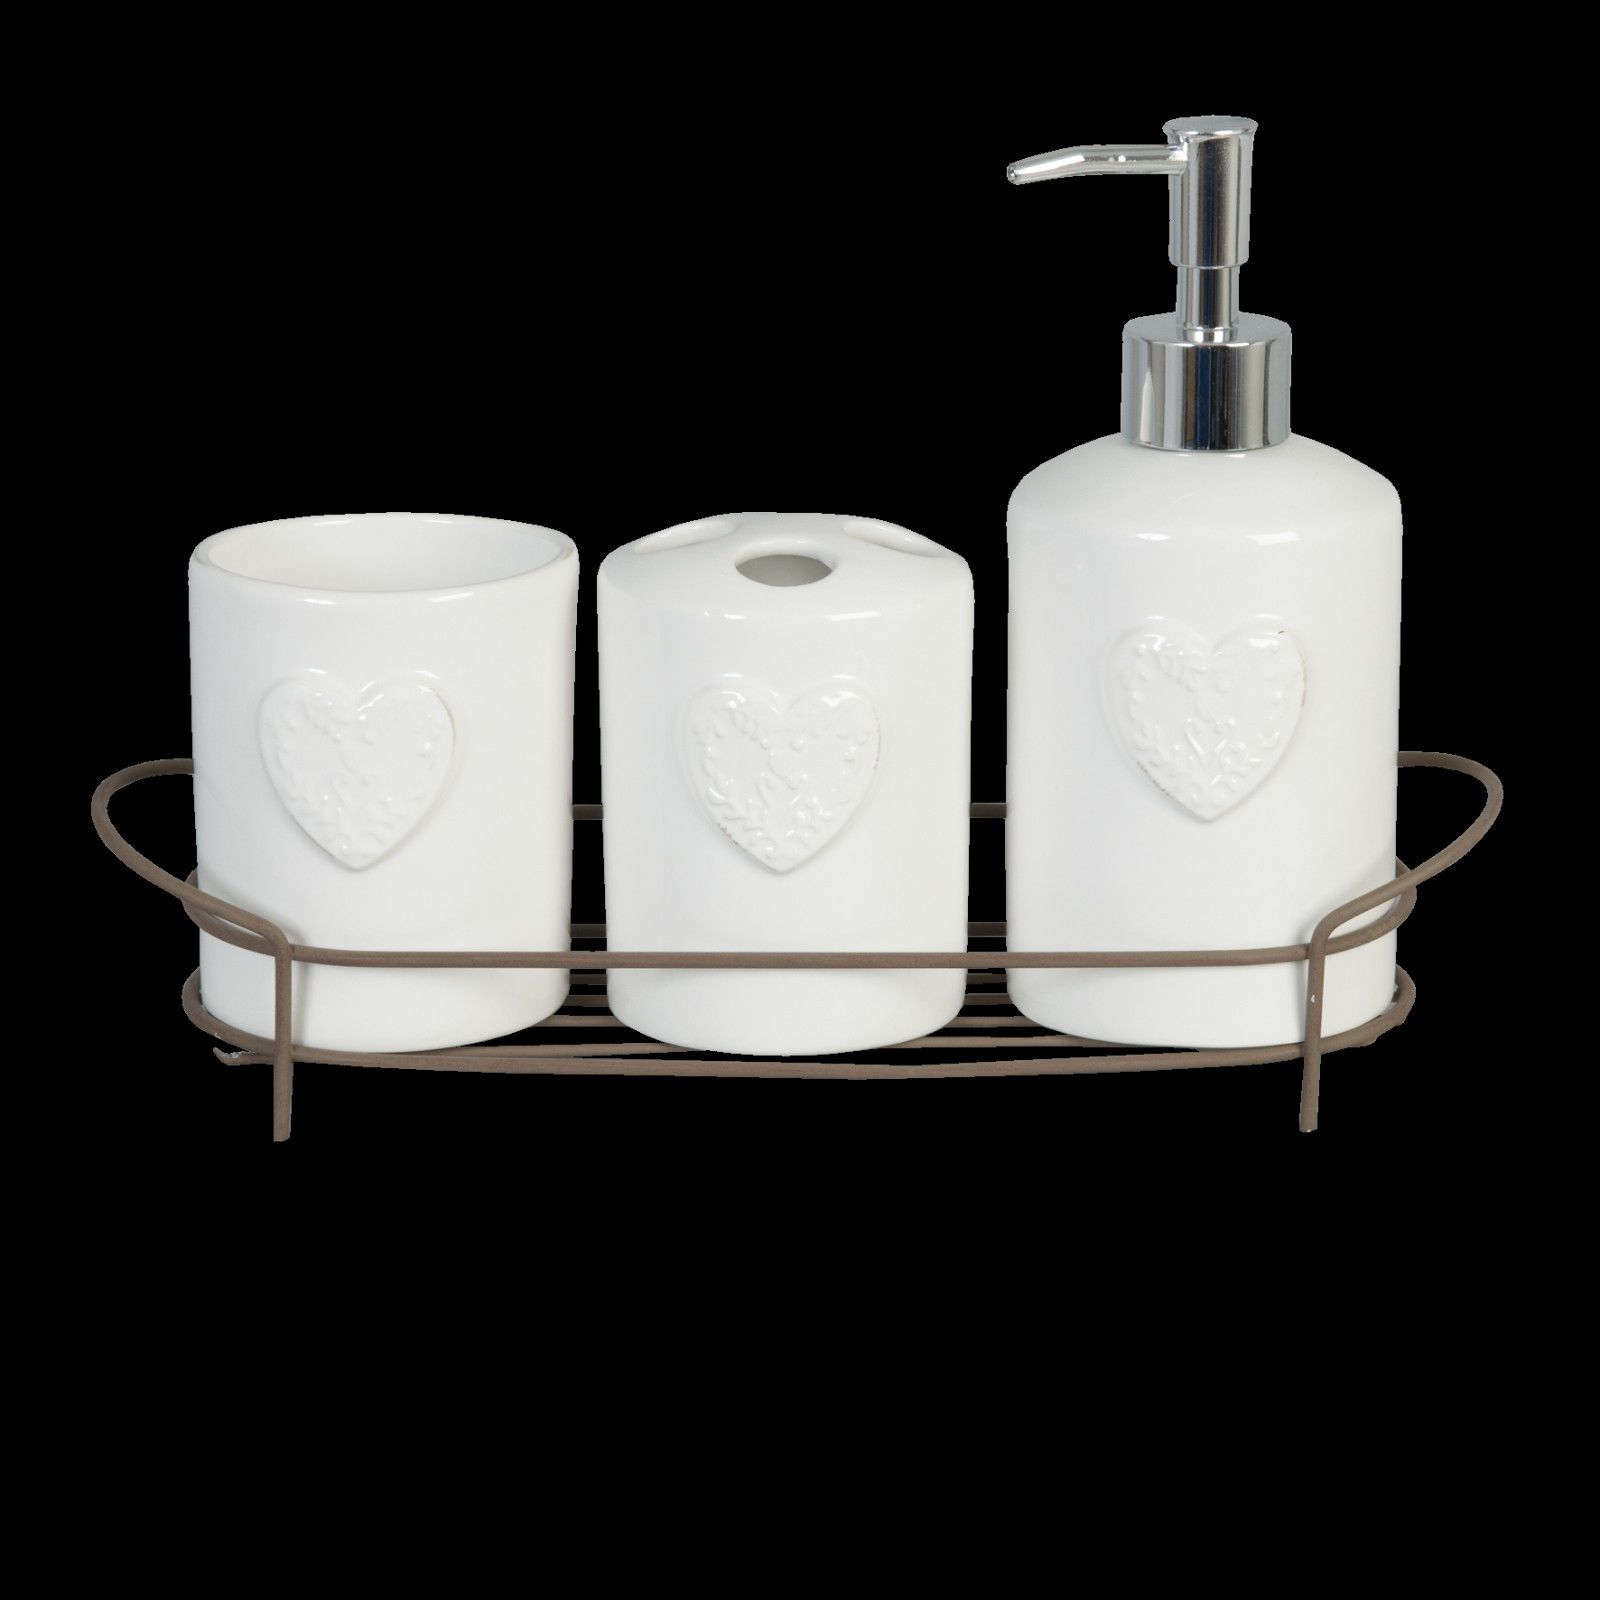 Heart Design Ceramic Bathroom Set W Soap Dispenser Toothbrush Holder Cup